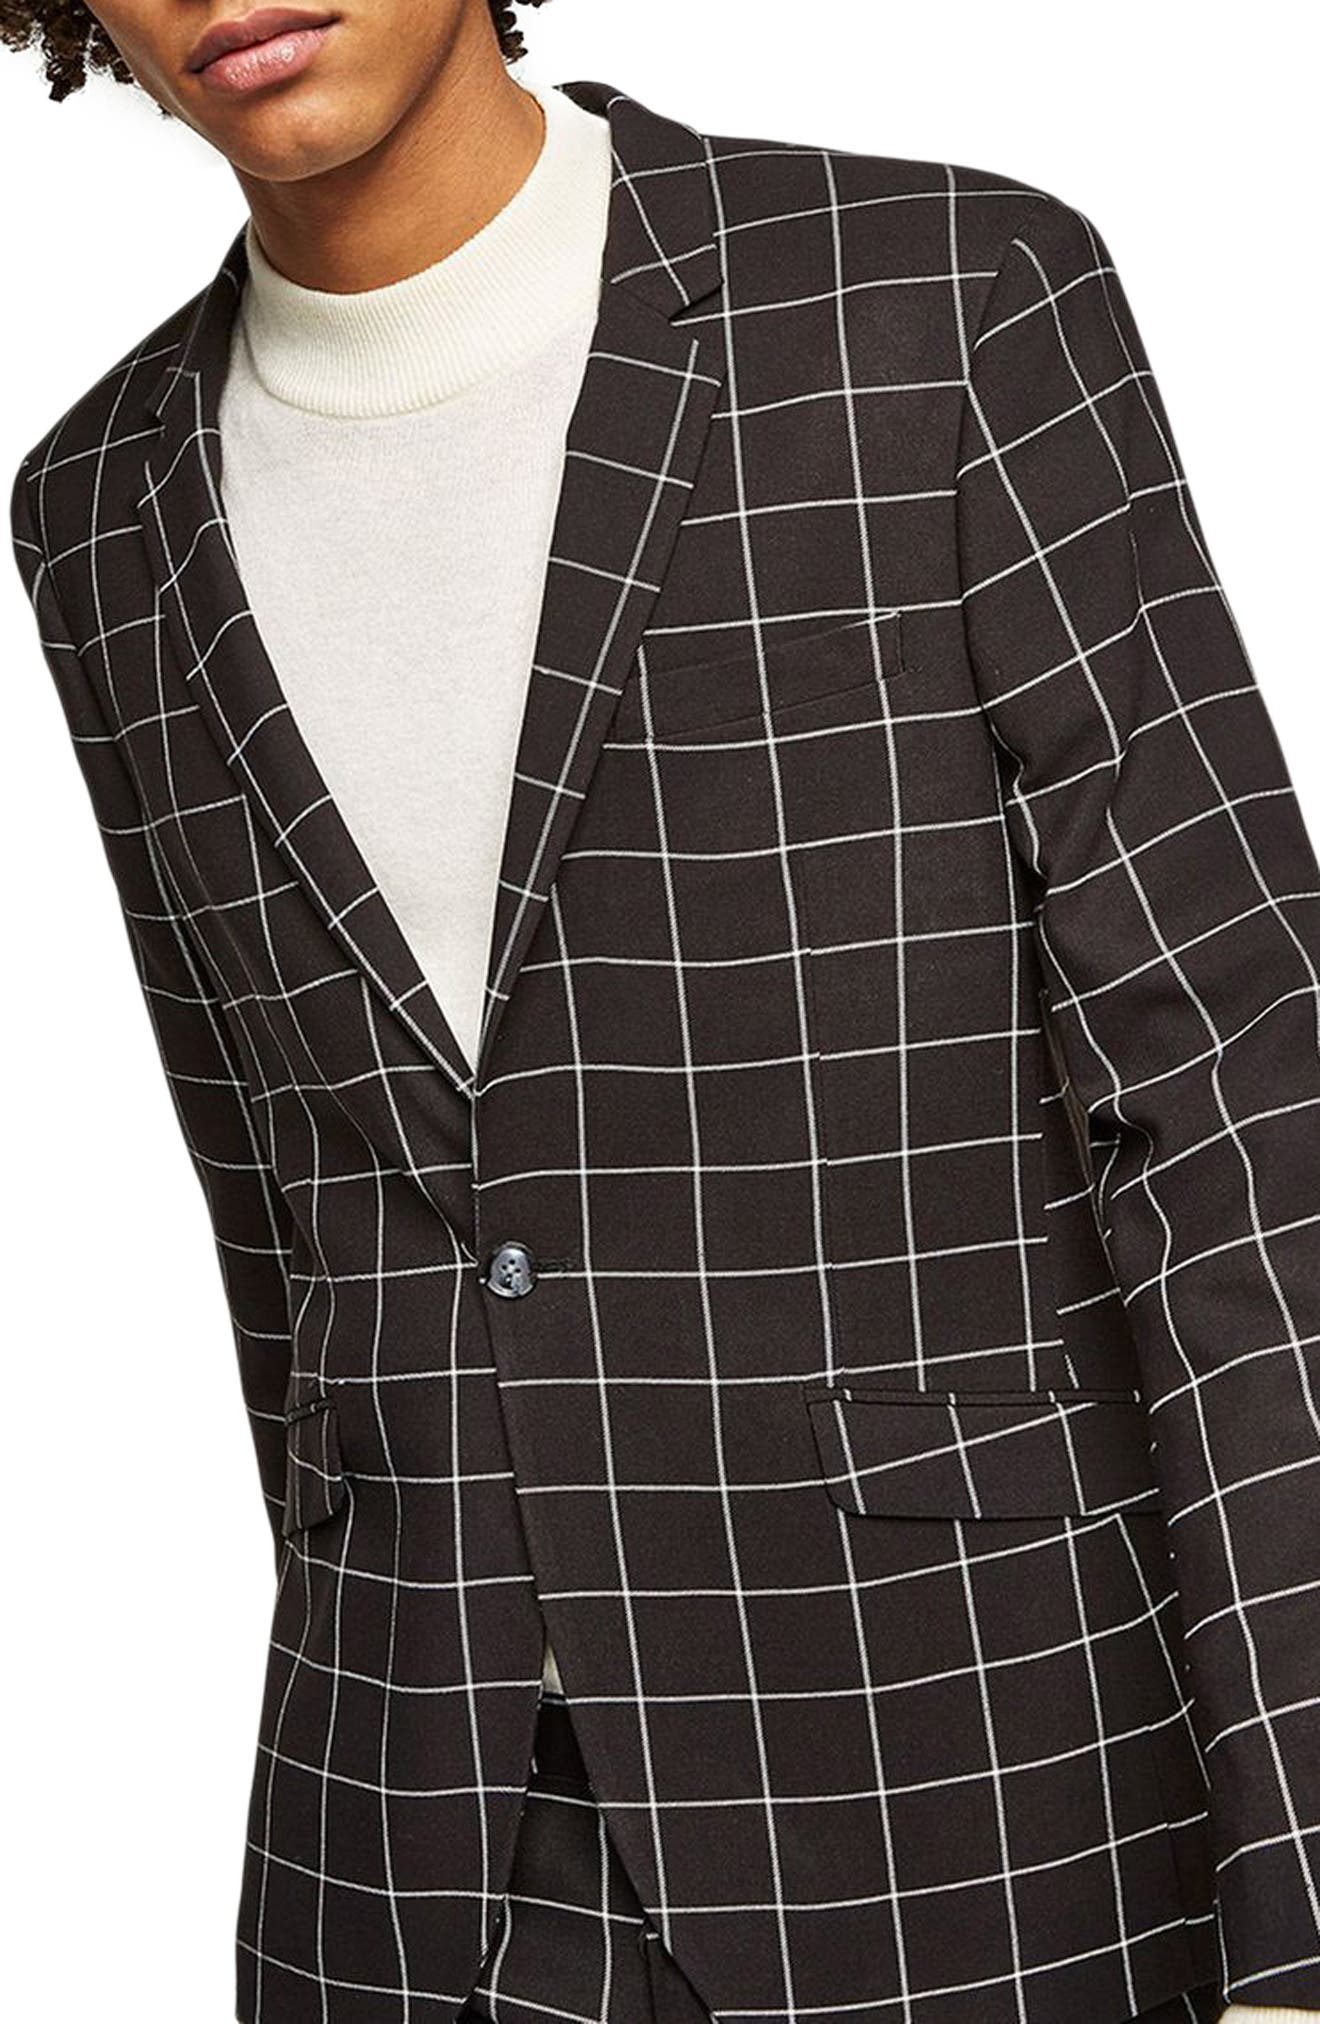 Skinny Fit Windowpane Suit Jacket,                         Main,                         color, BLACK MULTI